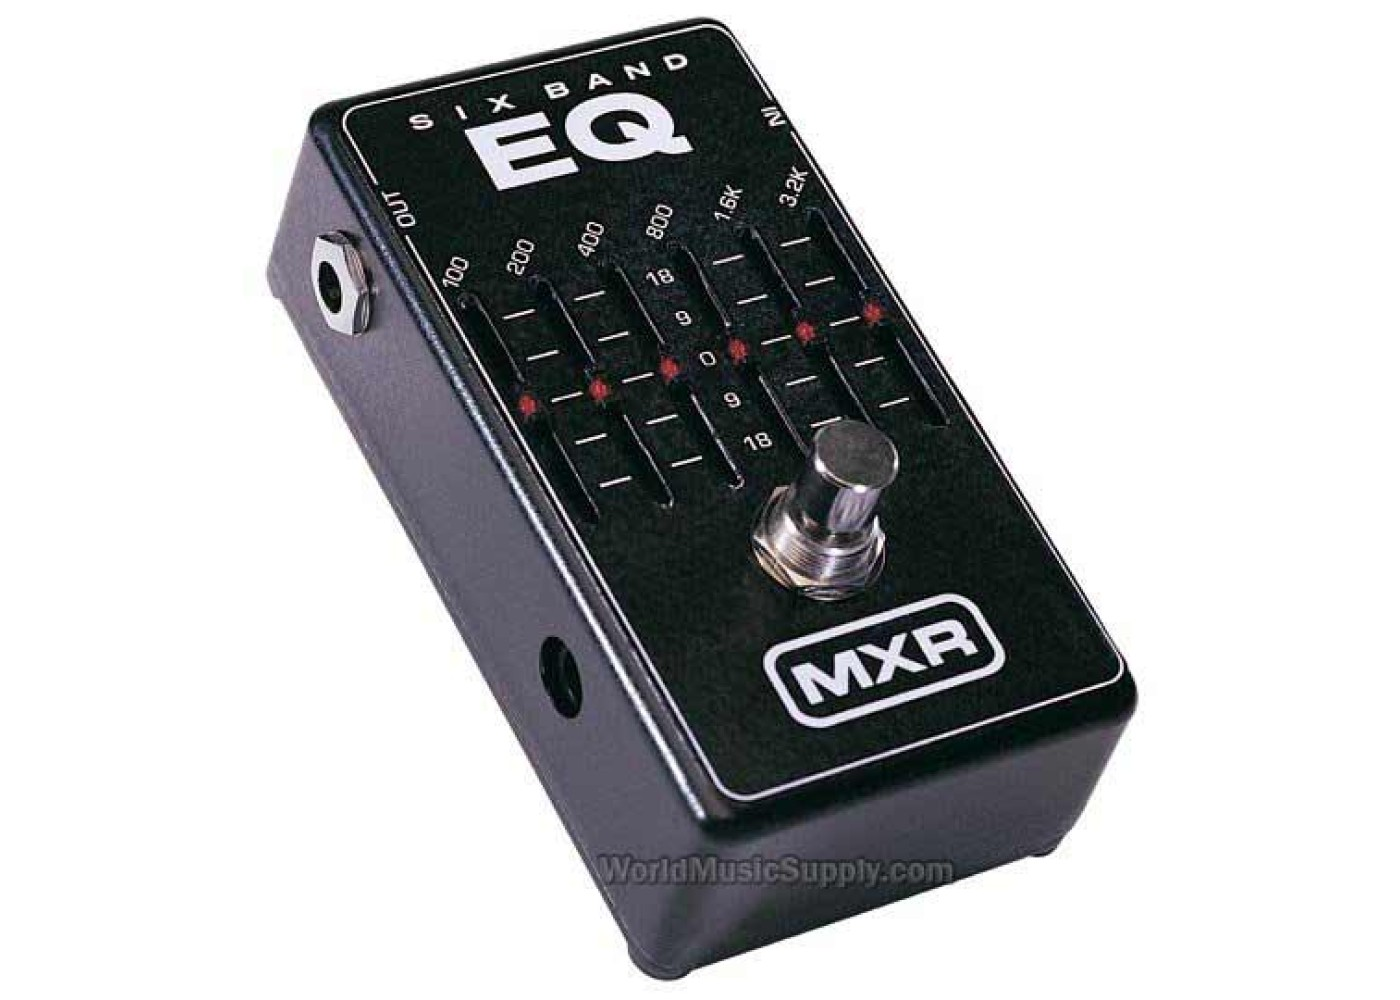 mxr 6 band guitar graphic eq equalizer pedal. Black Bedroom Furniture Sets. Home Design Ideas